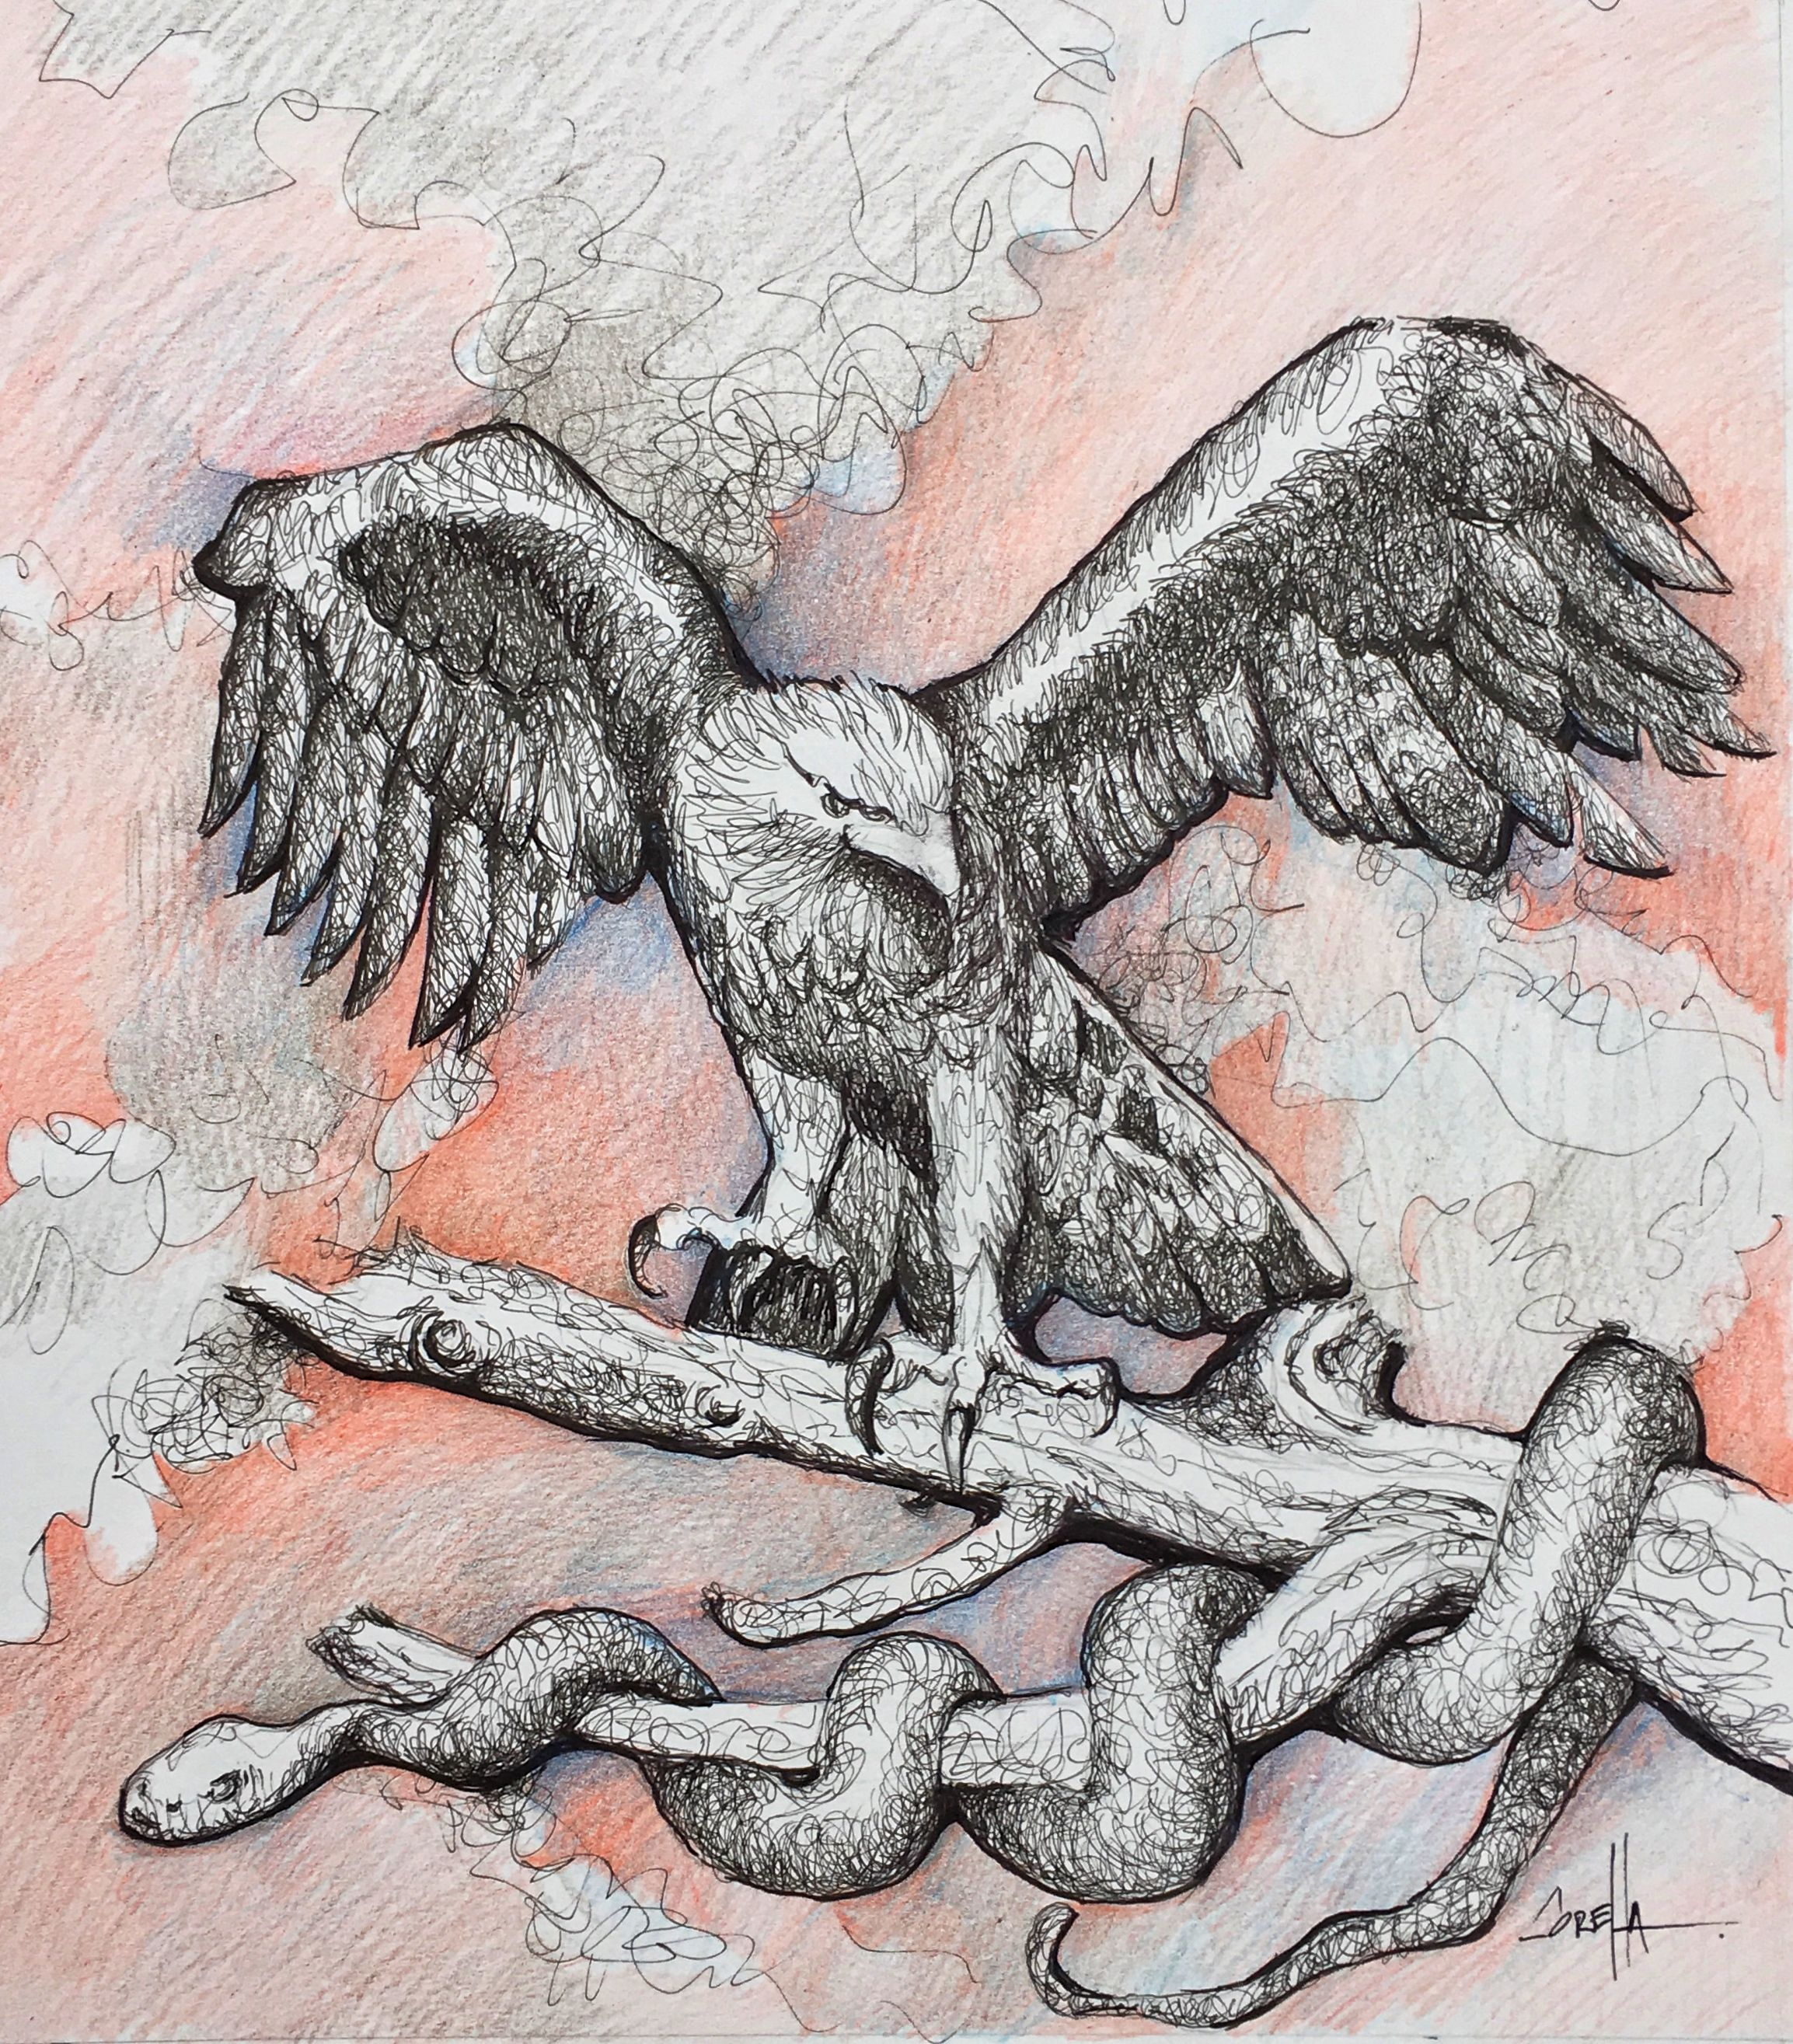 Aguila Y Serpiente Artline Y Lápiz De Color Dibujos Sketches Y Art